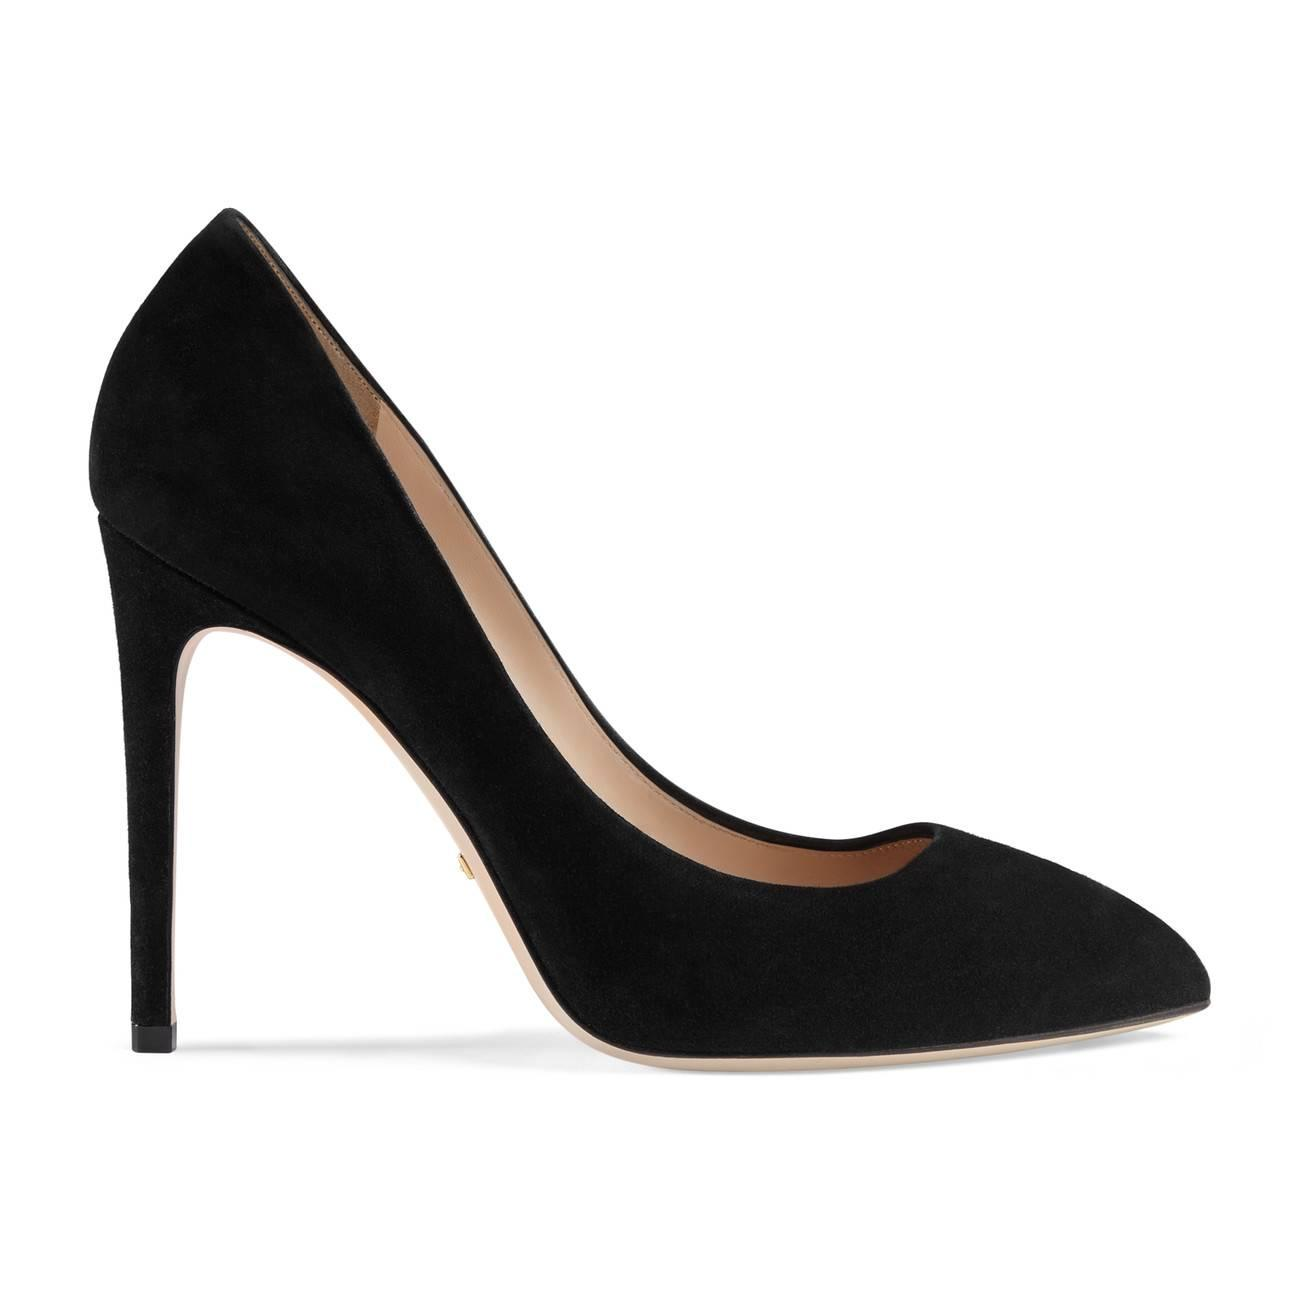 d4d0a899f13 Lyst - Gucci Suede Pump With Removable Web Bow in Black